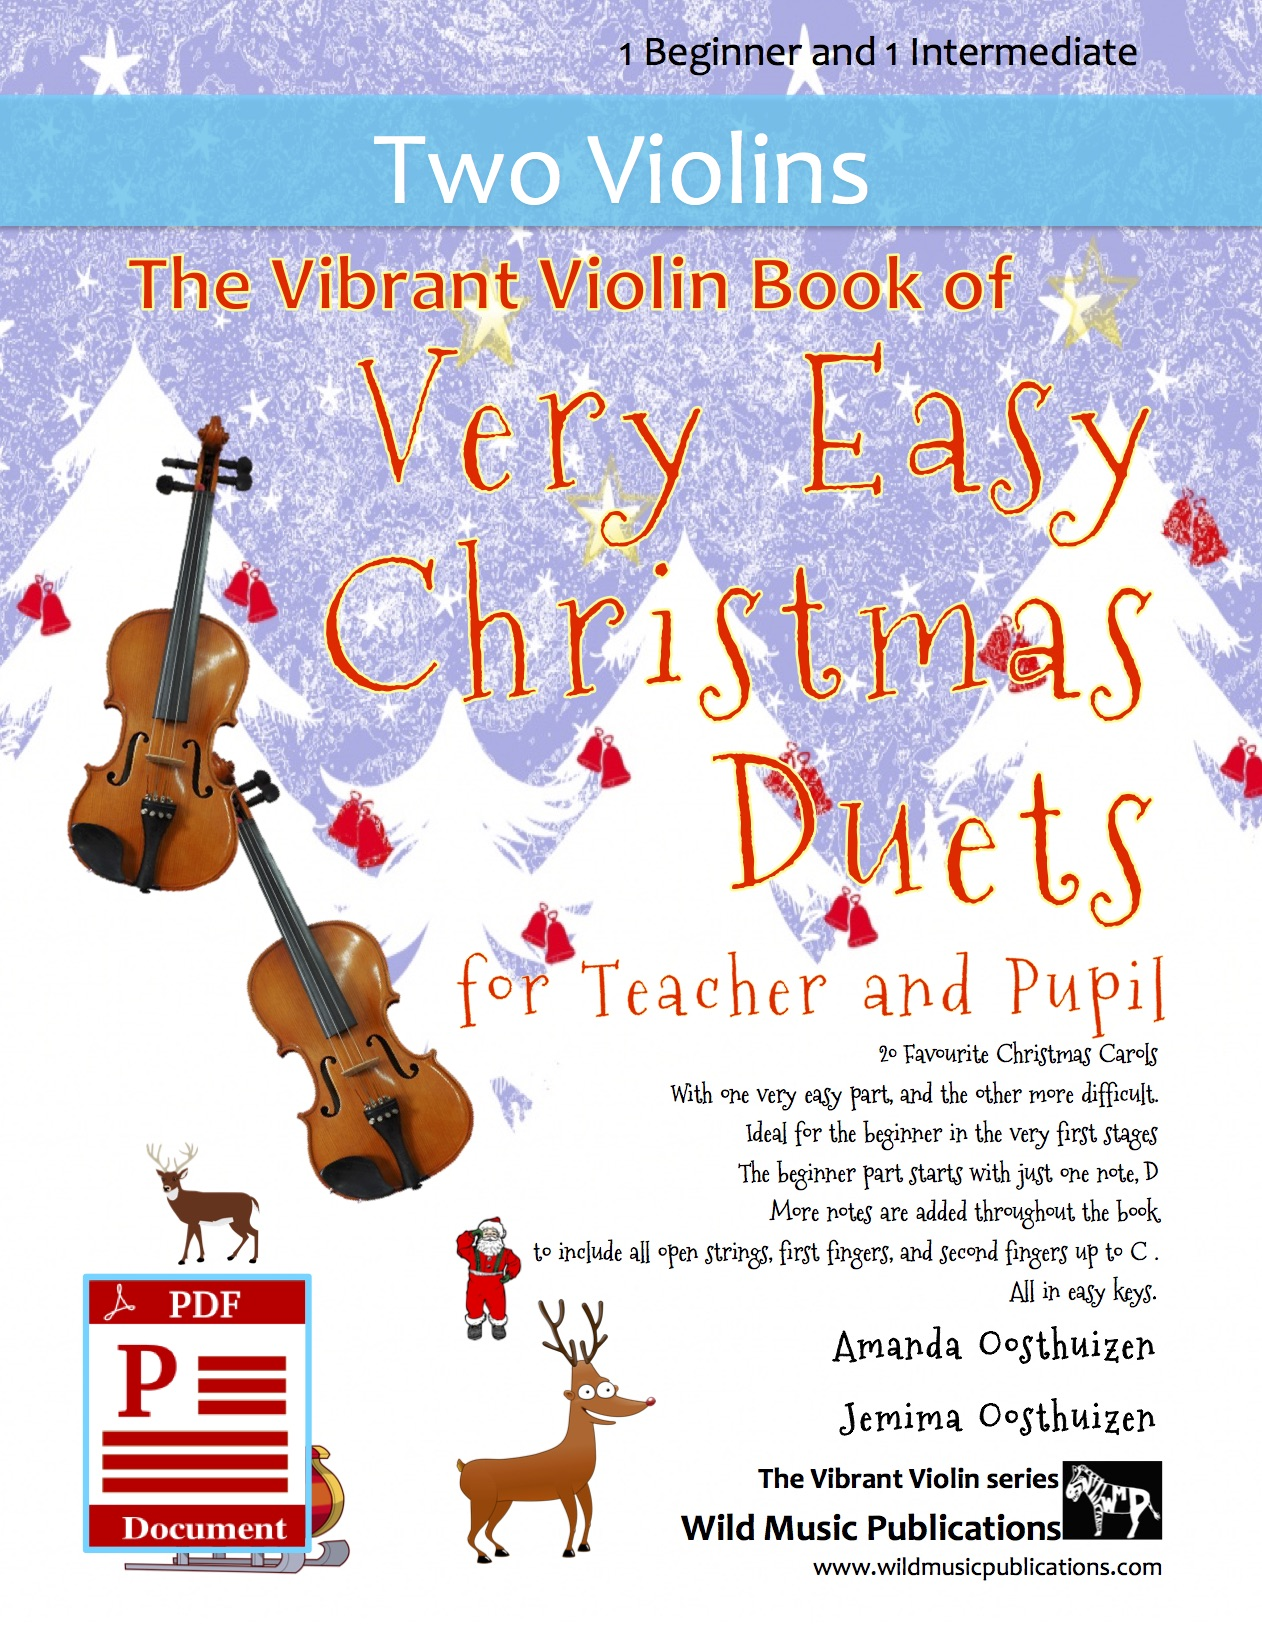 The Vibrant Violin Book of Very Easy Christmas Duets for Teacher and Pupil  Download - Wild Music Publications